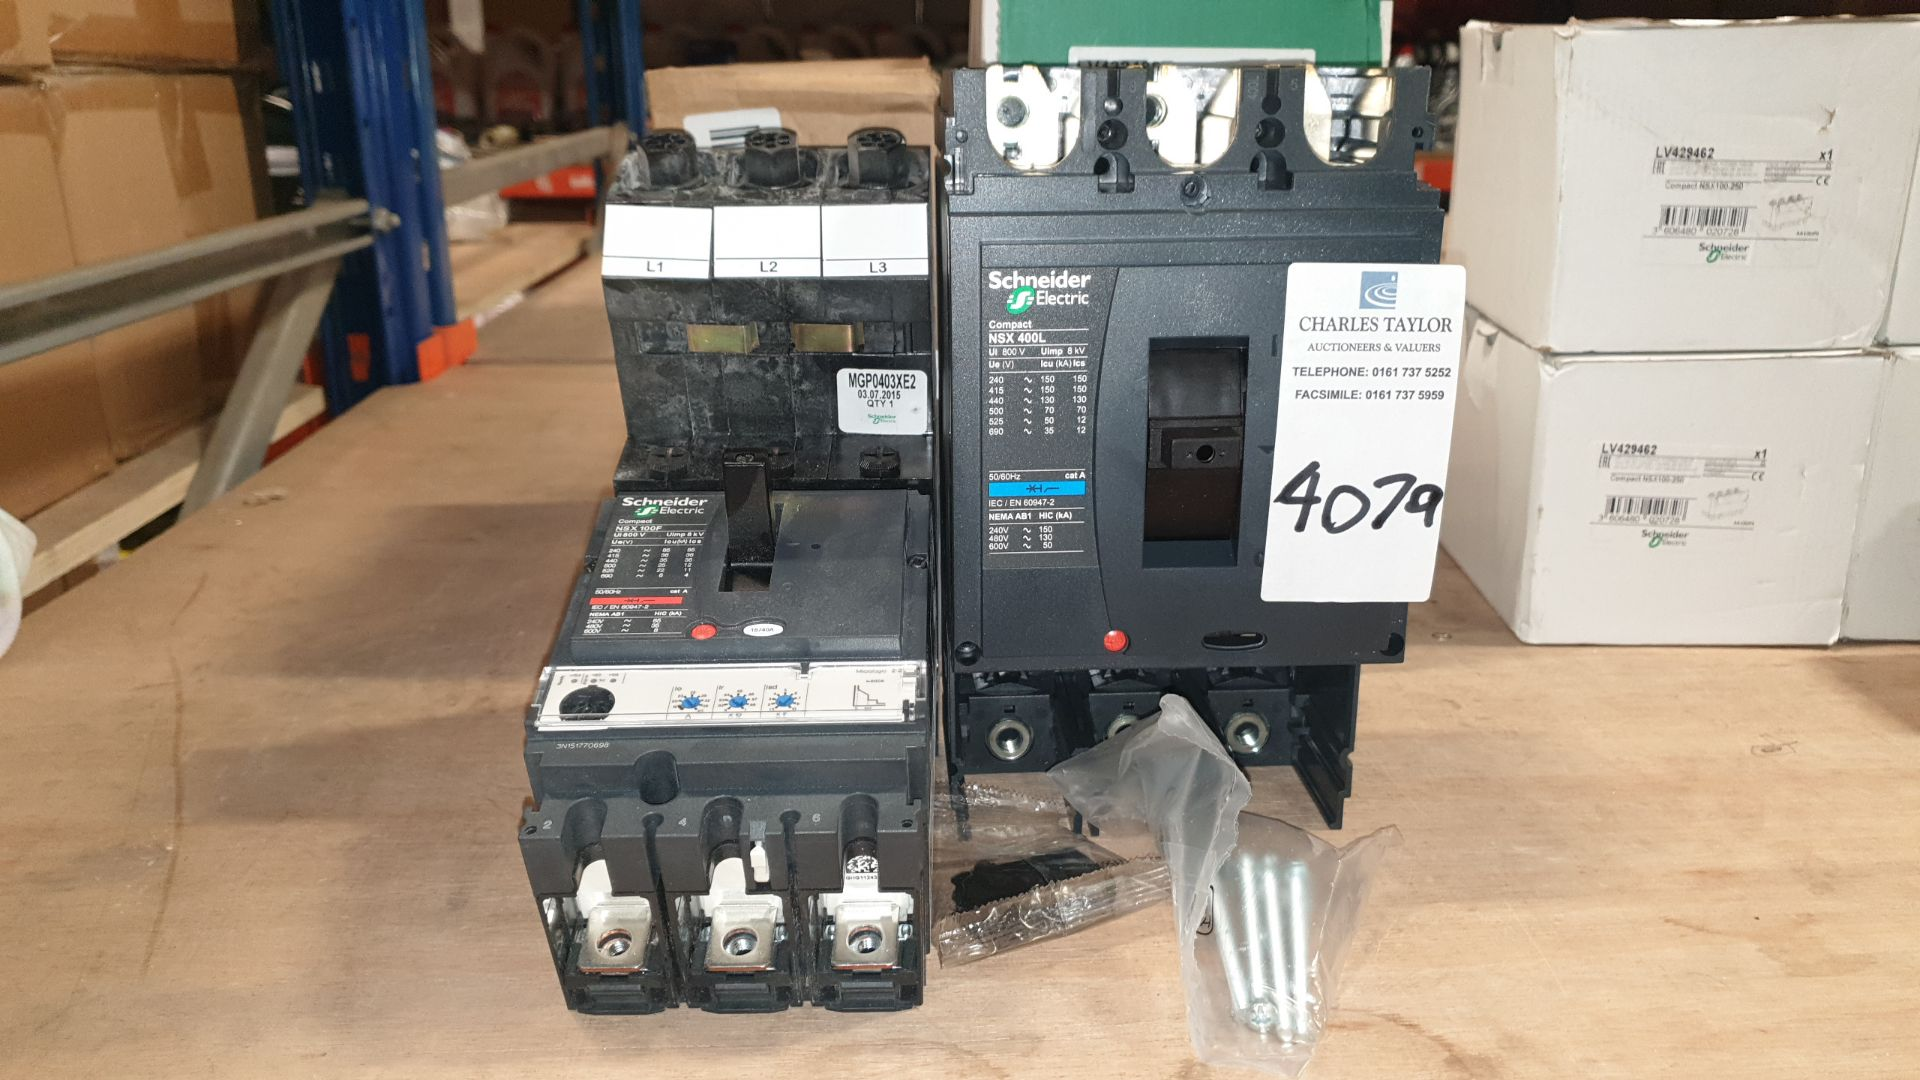 3 PIECE MIXED LOT INCLUDING 1 X SHEIDER ELECTRIC COMPACT NSX 100F AND 2 X SHNEIDER ELECTRIC NSX